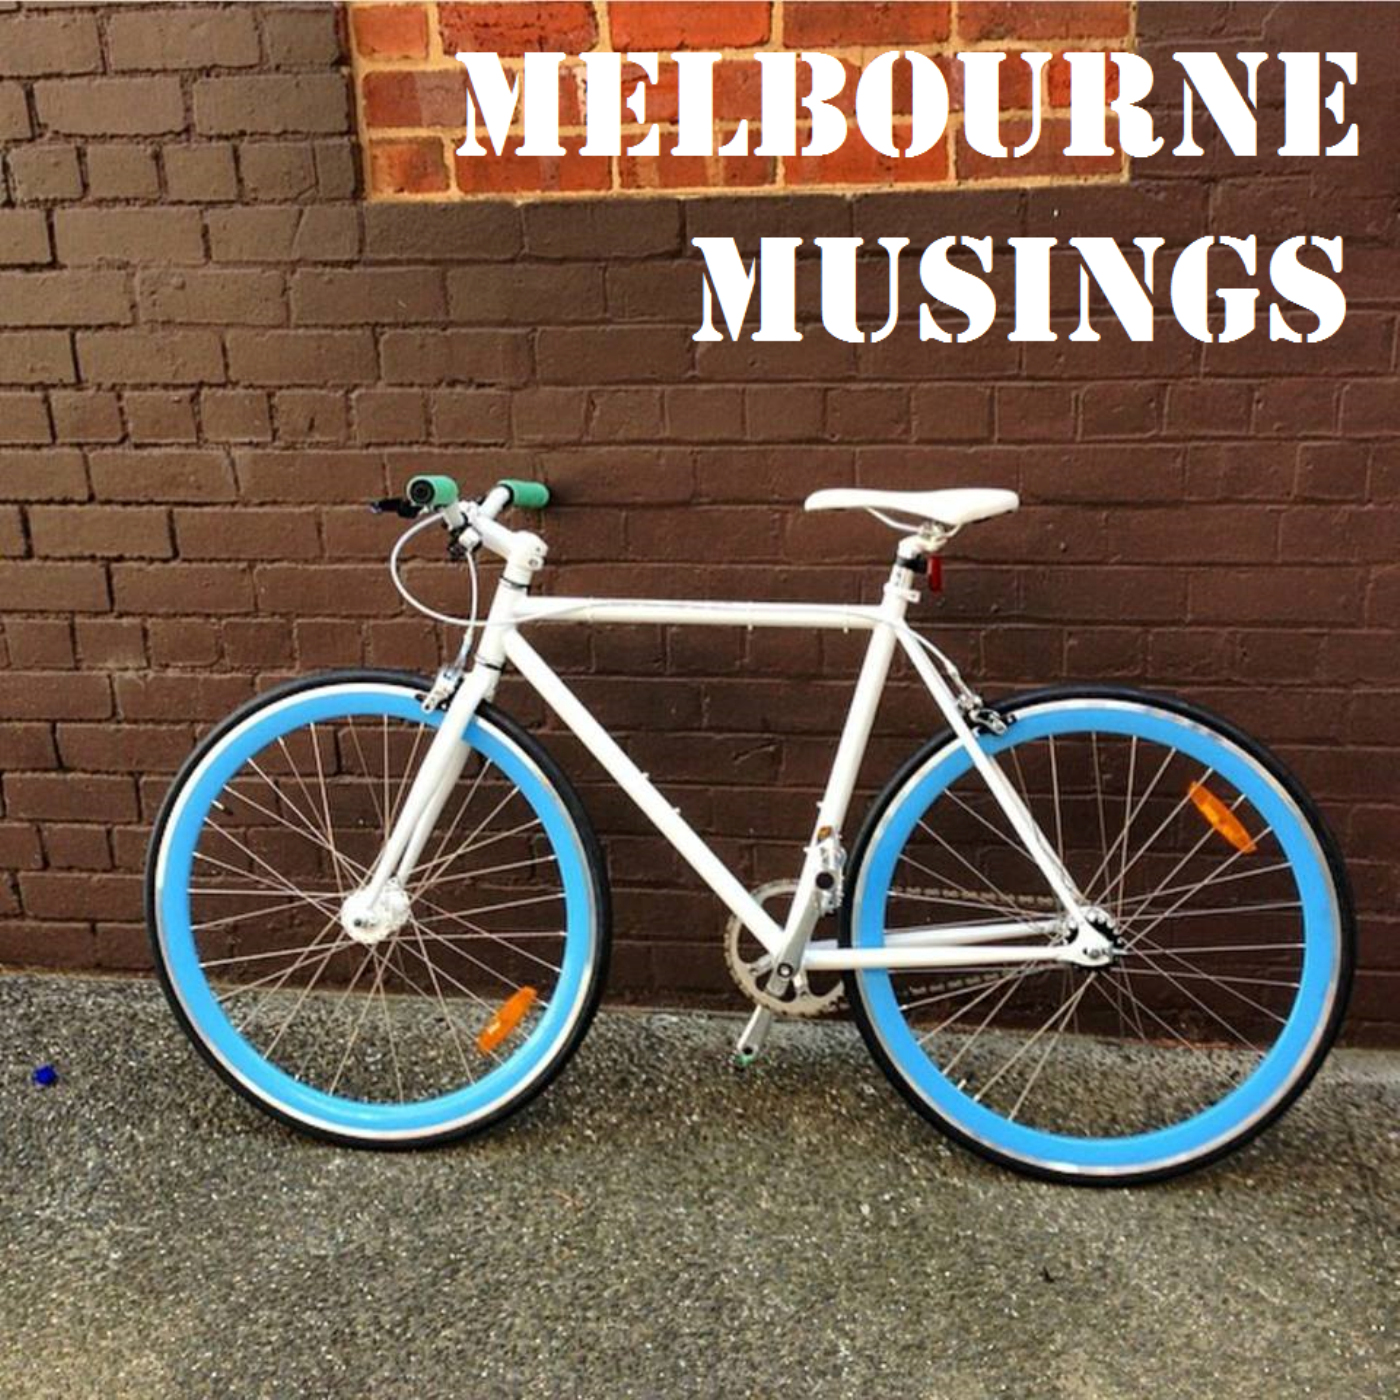 Melbourne Musings Episode 84 show art